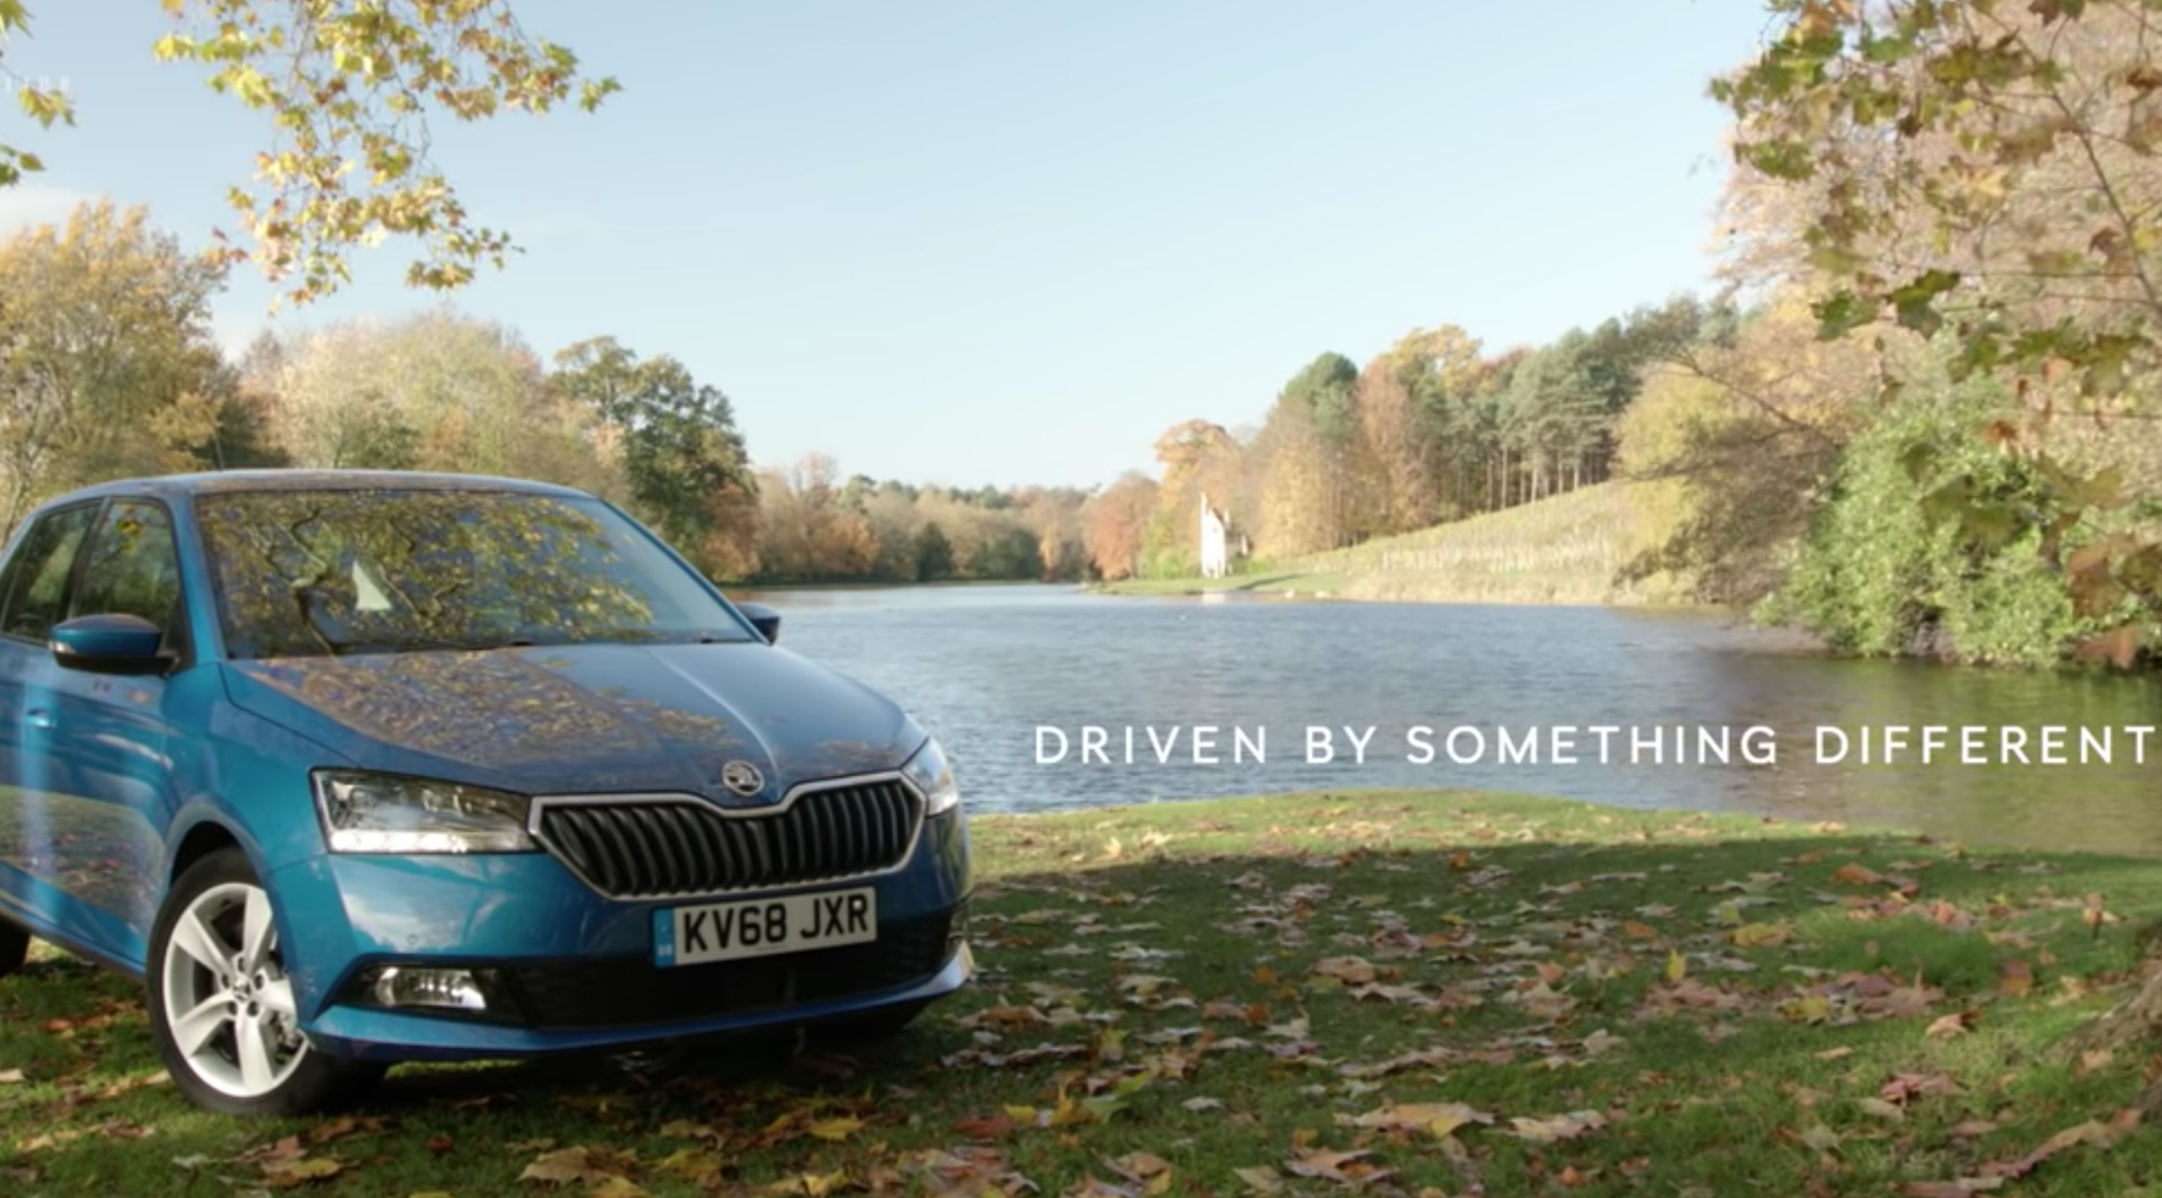 SKODA - WHAT DRIVES BETH